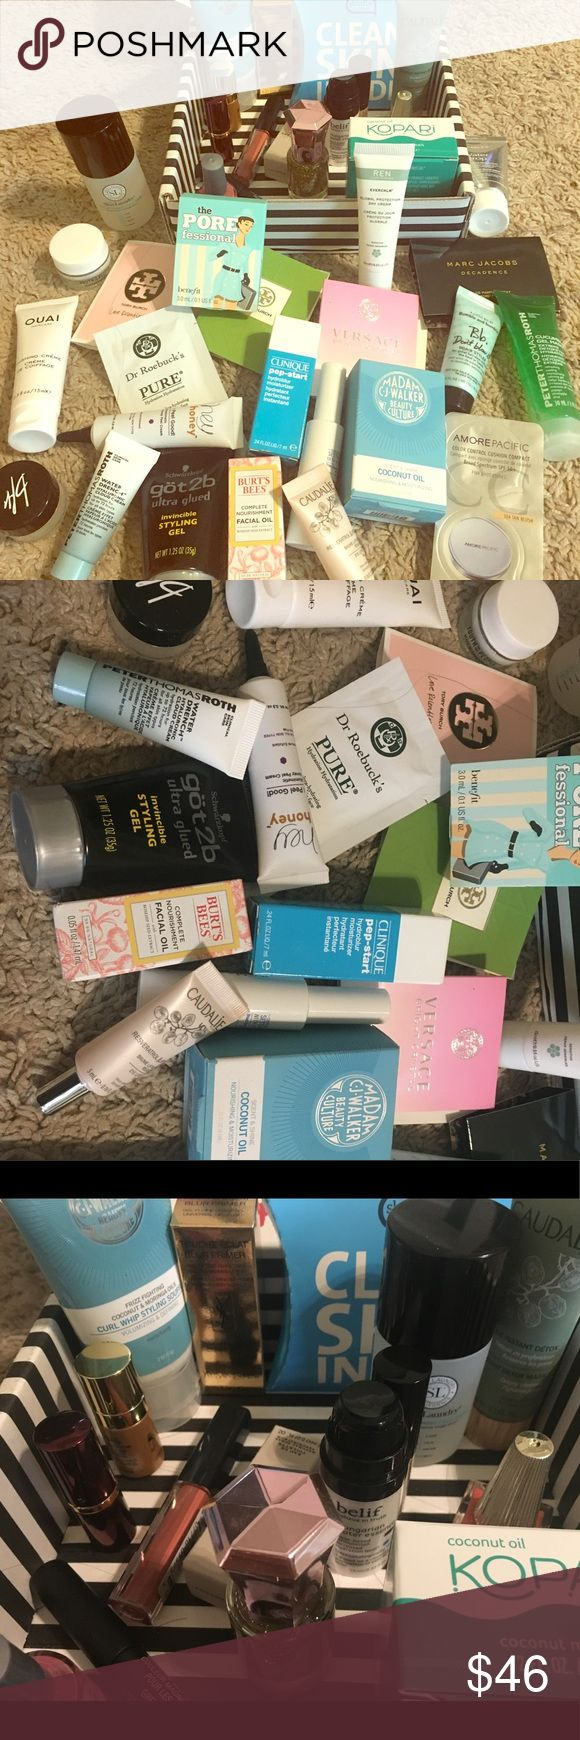 Sephora, Clinique, Smashbox, etc Beauty Bundle Sephora, Clinique, Smashbox, etc Beauty Bundle - 42 different beauty products new in boxes. From cleansers and lotions and lip products to perfumes! Sephora Makeup